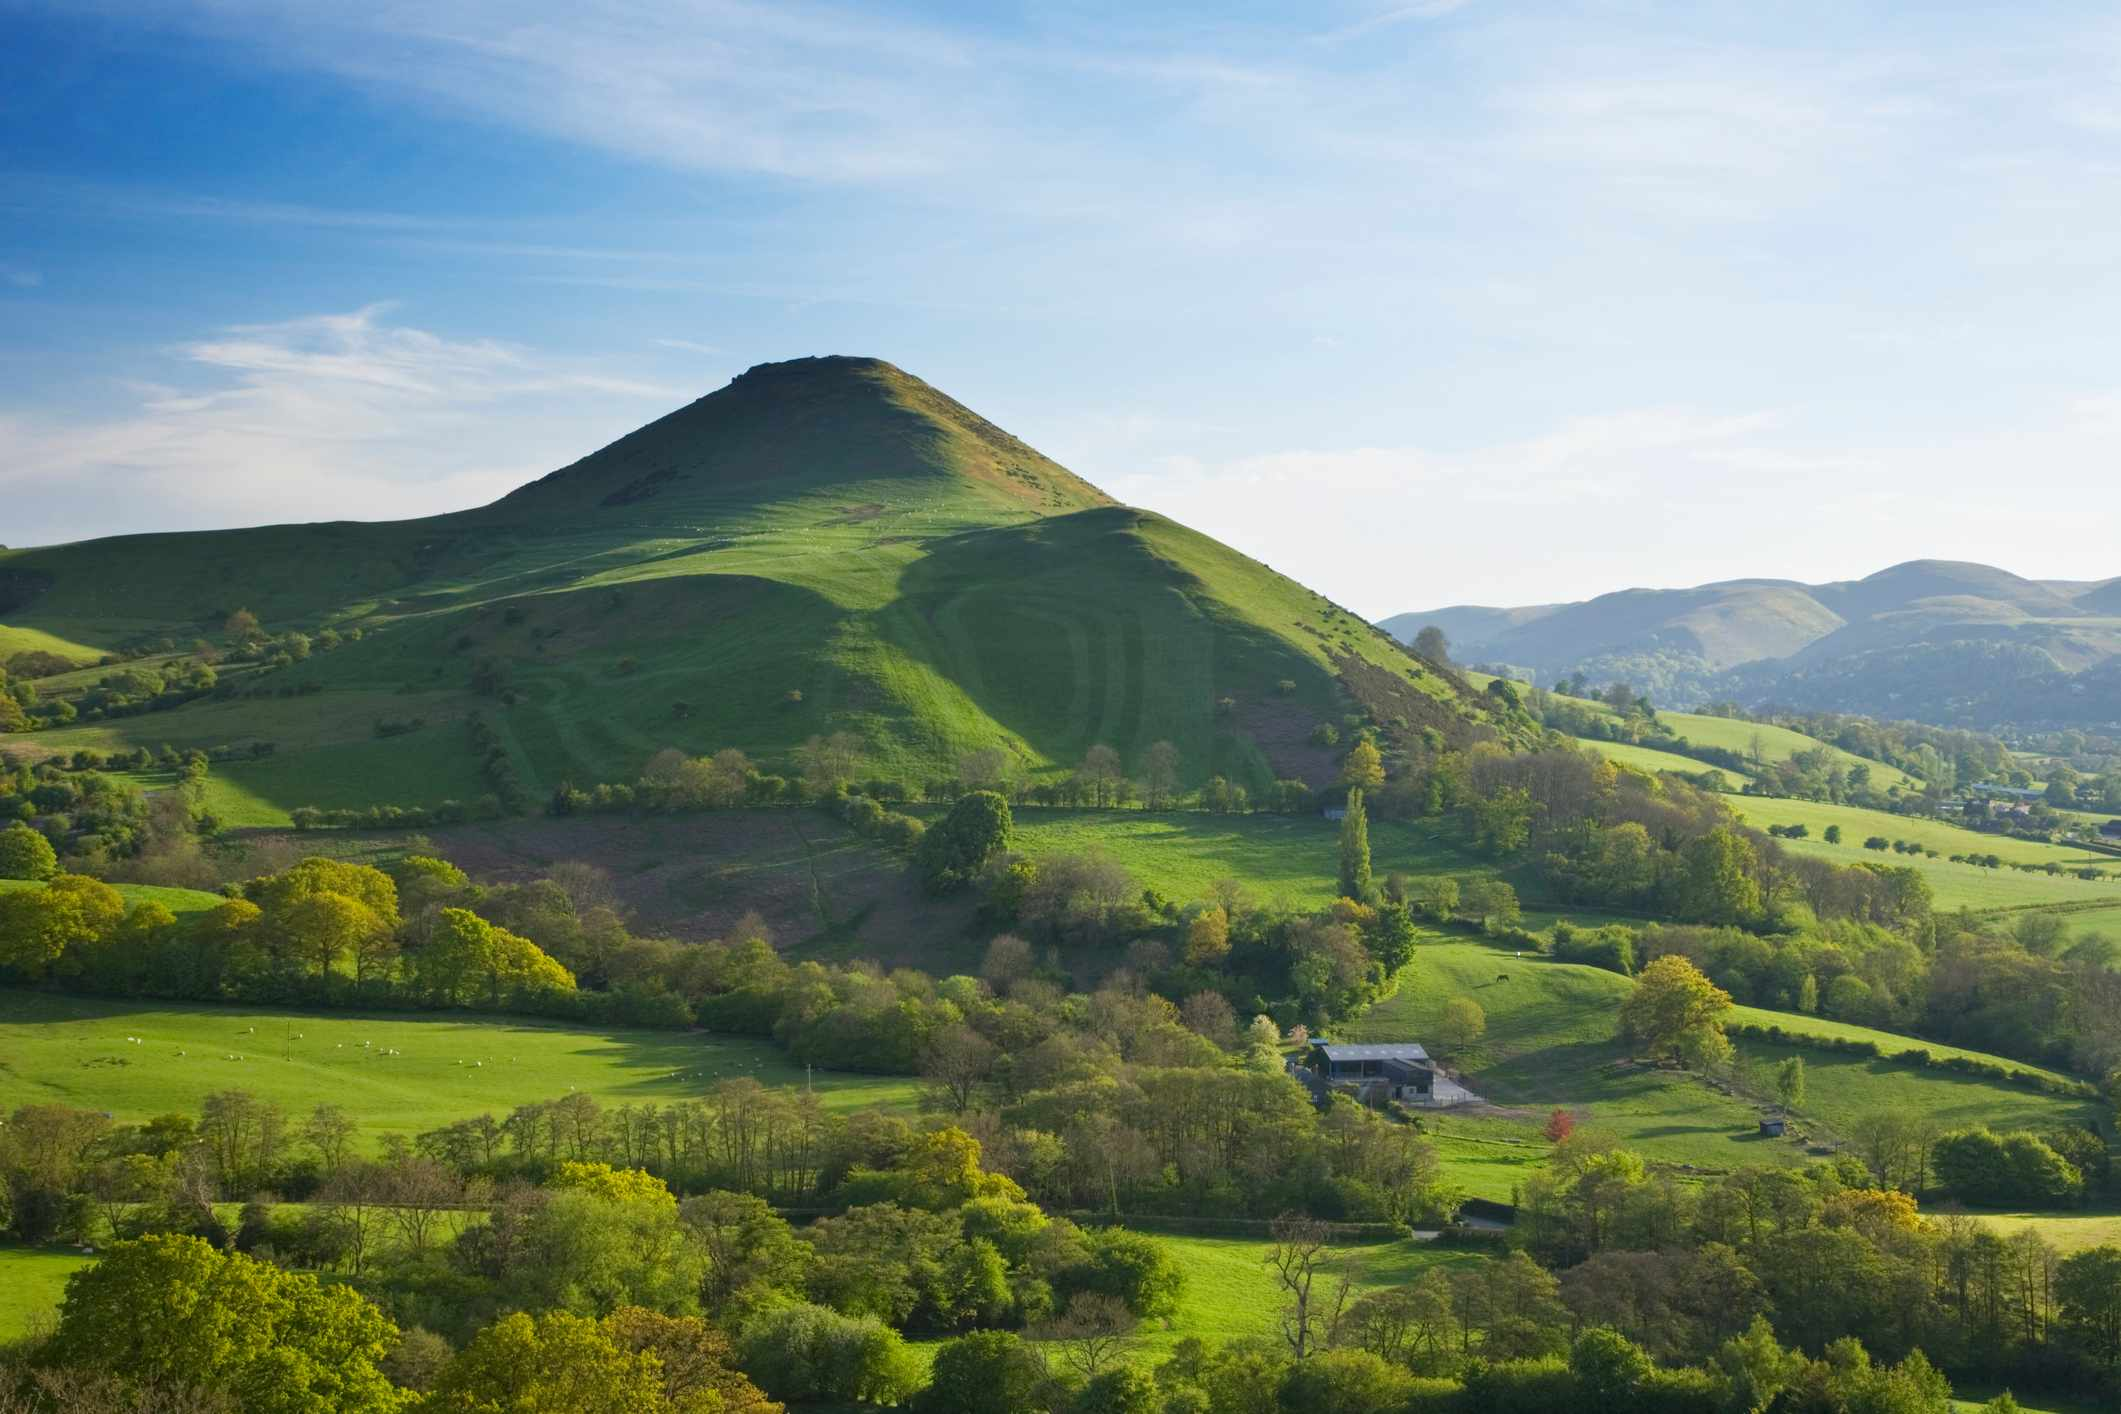 Caer Caradoc Hill. Shropshire. England. UK ©Getty